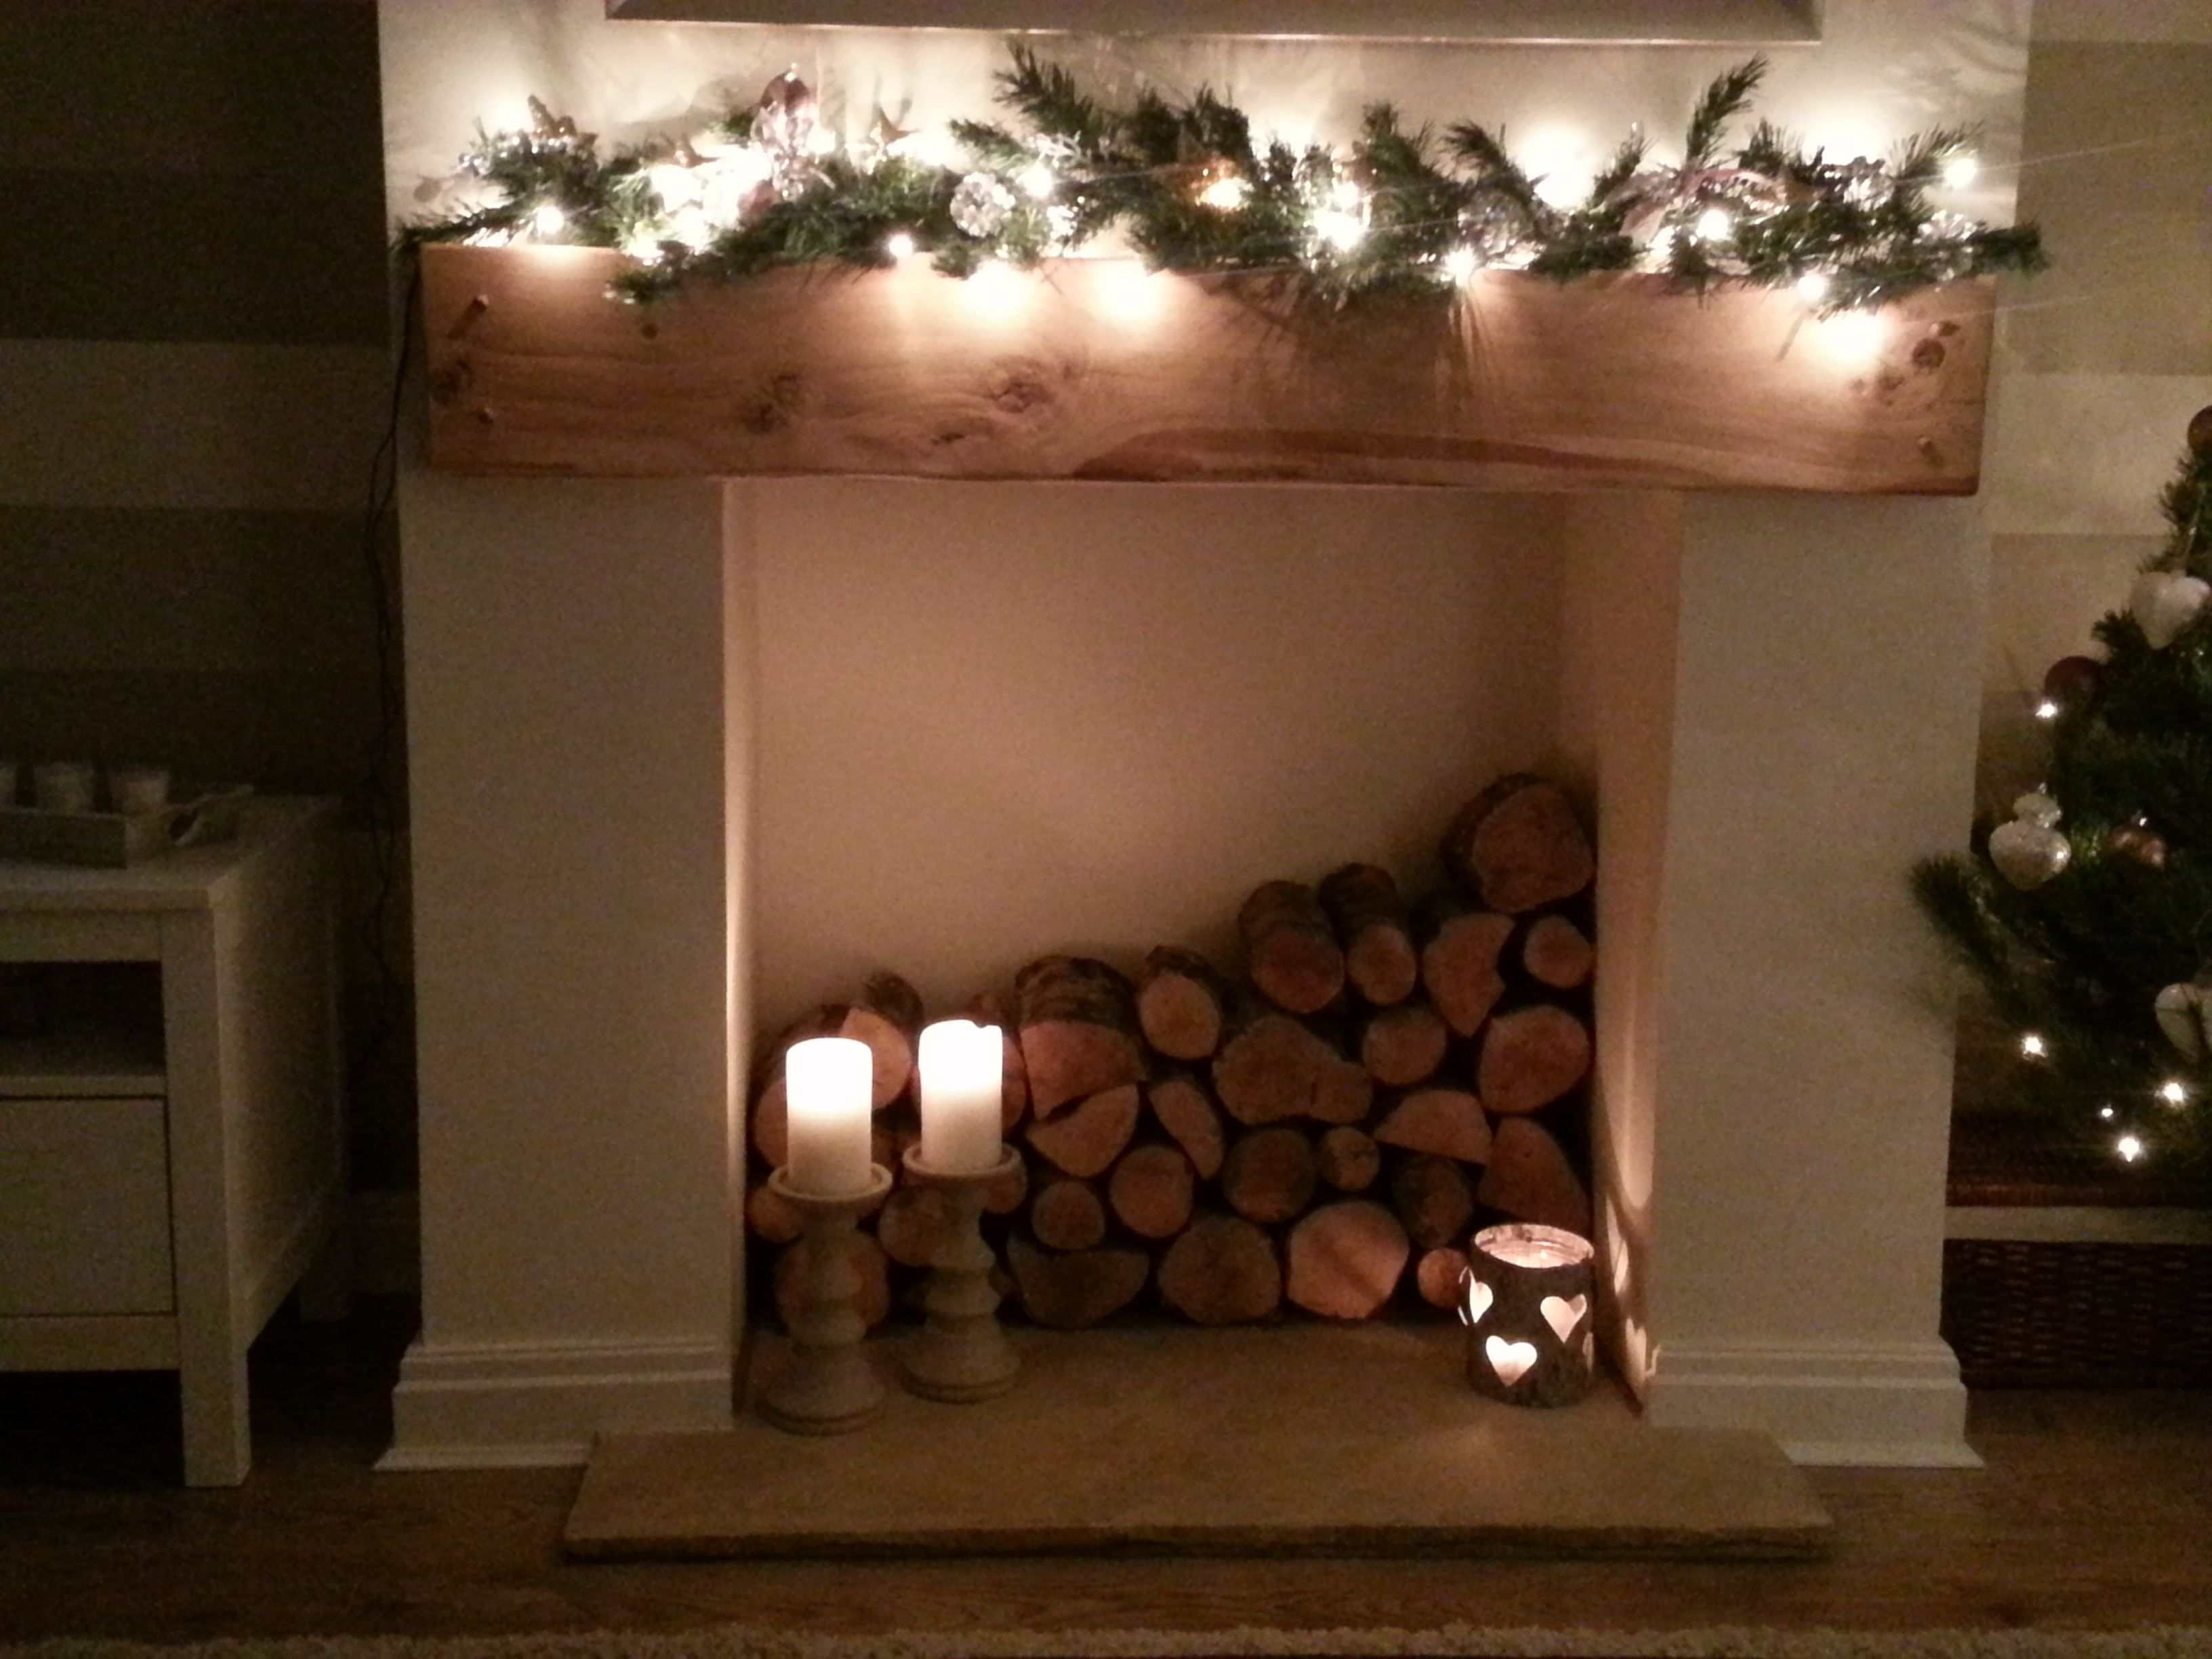 decor ideas decorate room living logs nonworking fireplace for decorative decorating design